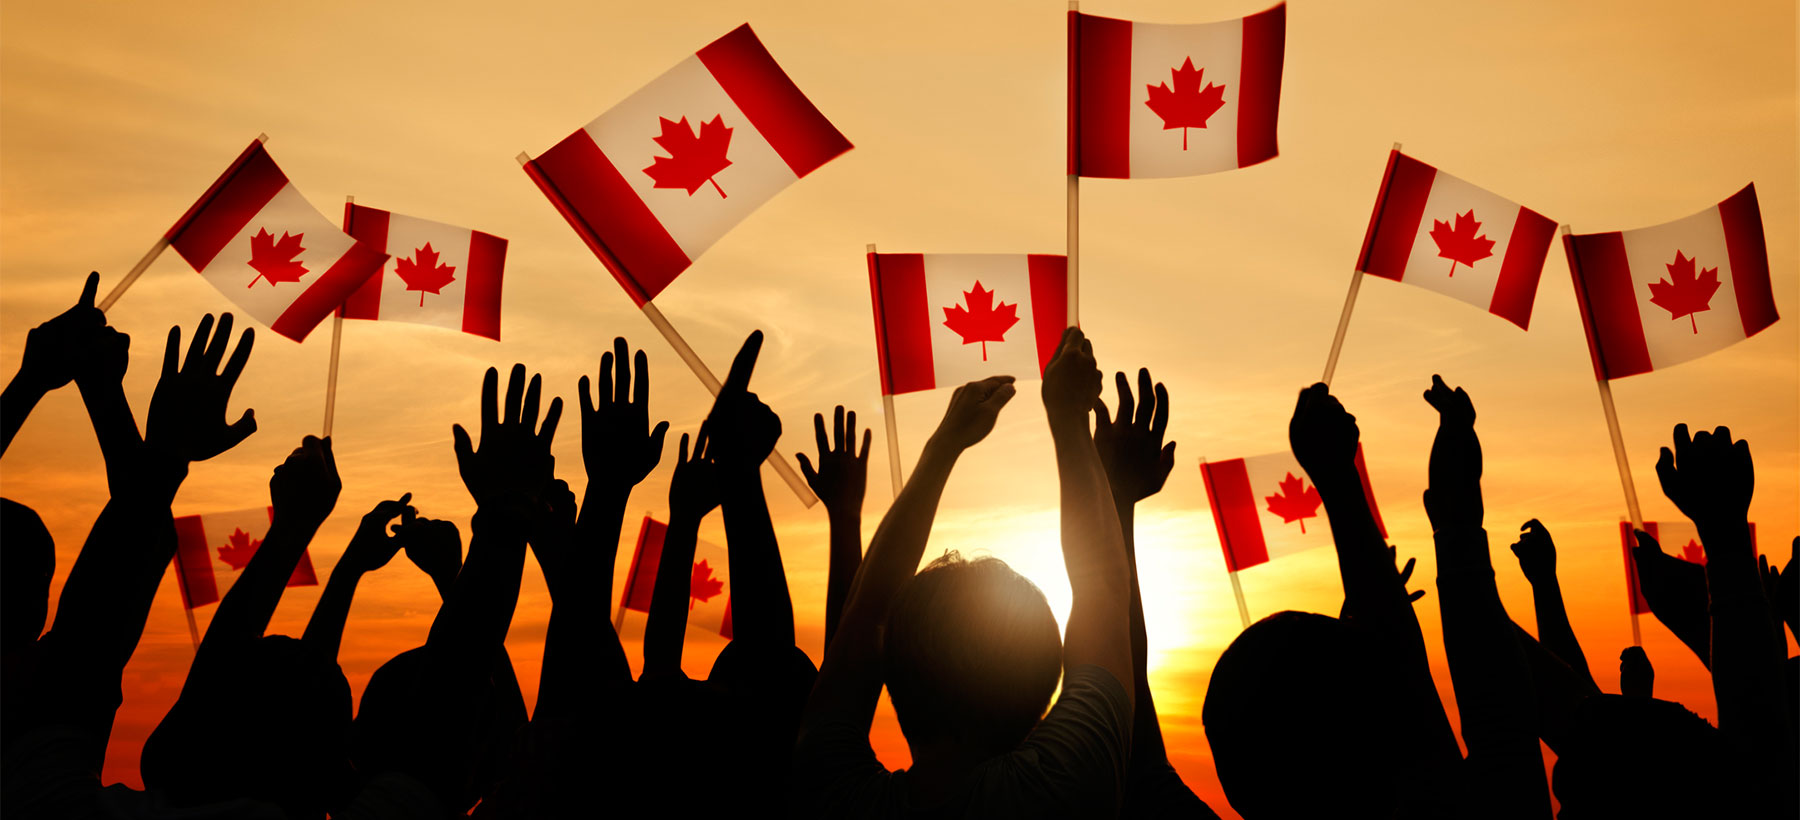 hands holding Canadian flags up in the air